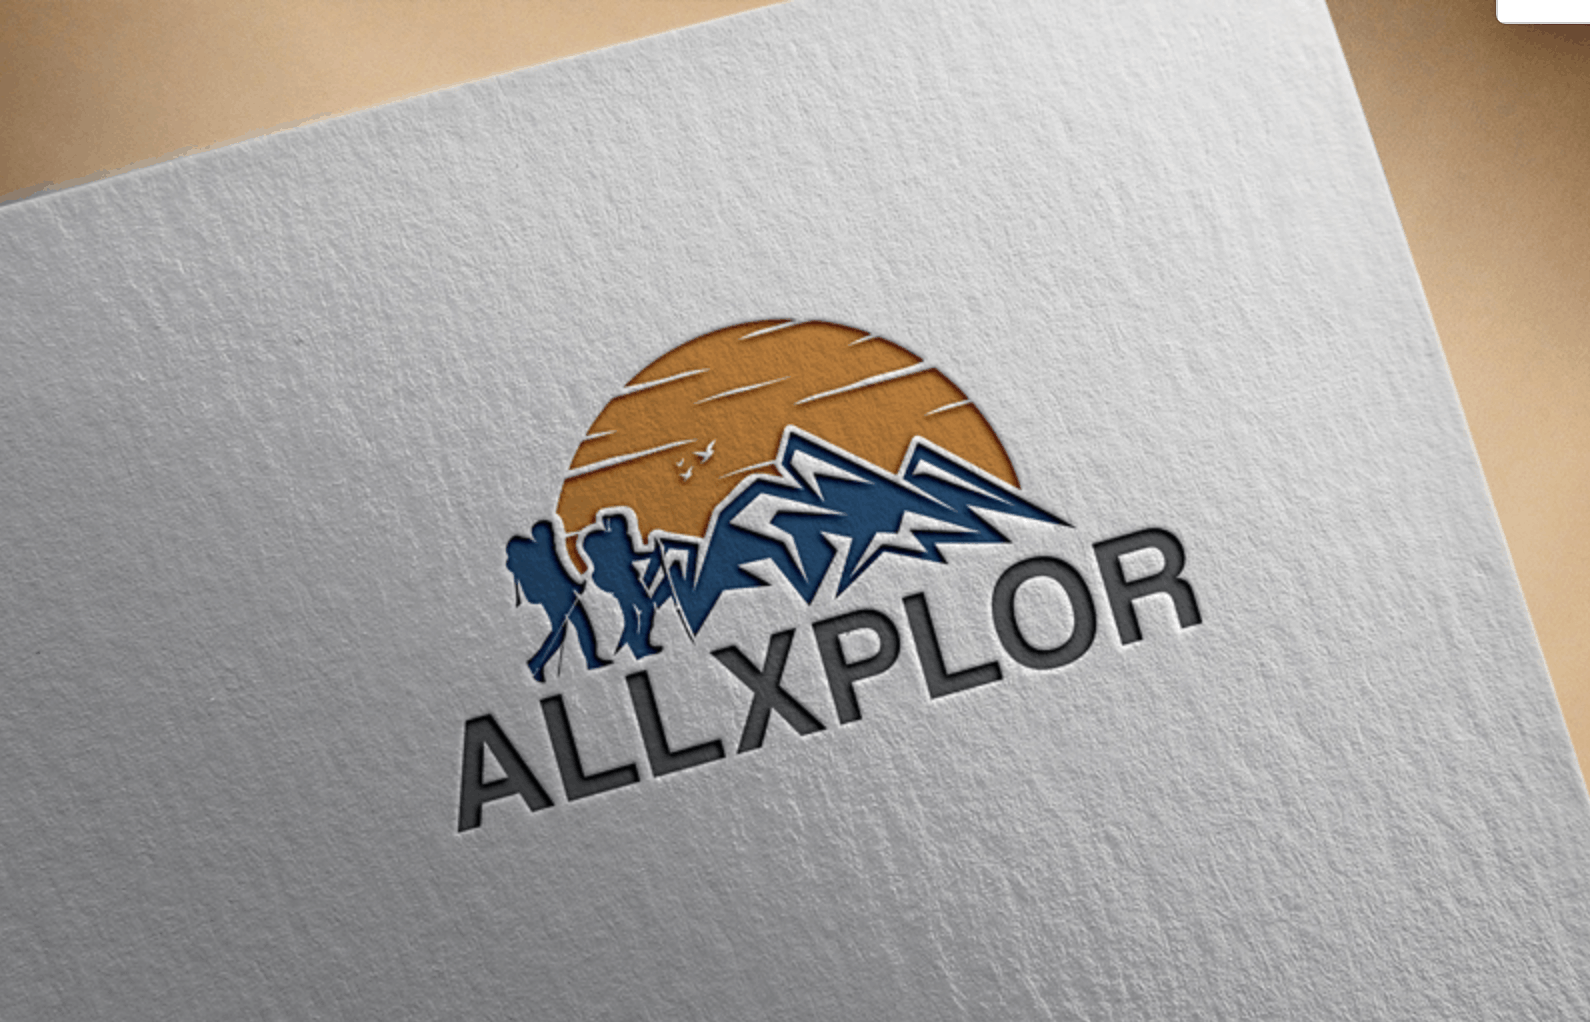 Renderforest alternatives - sample logo made by DesignCrowd designer - AllXPlor